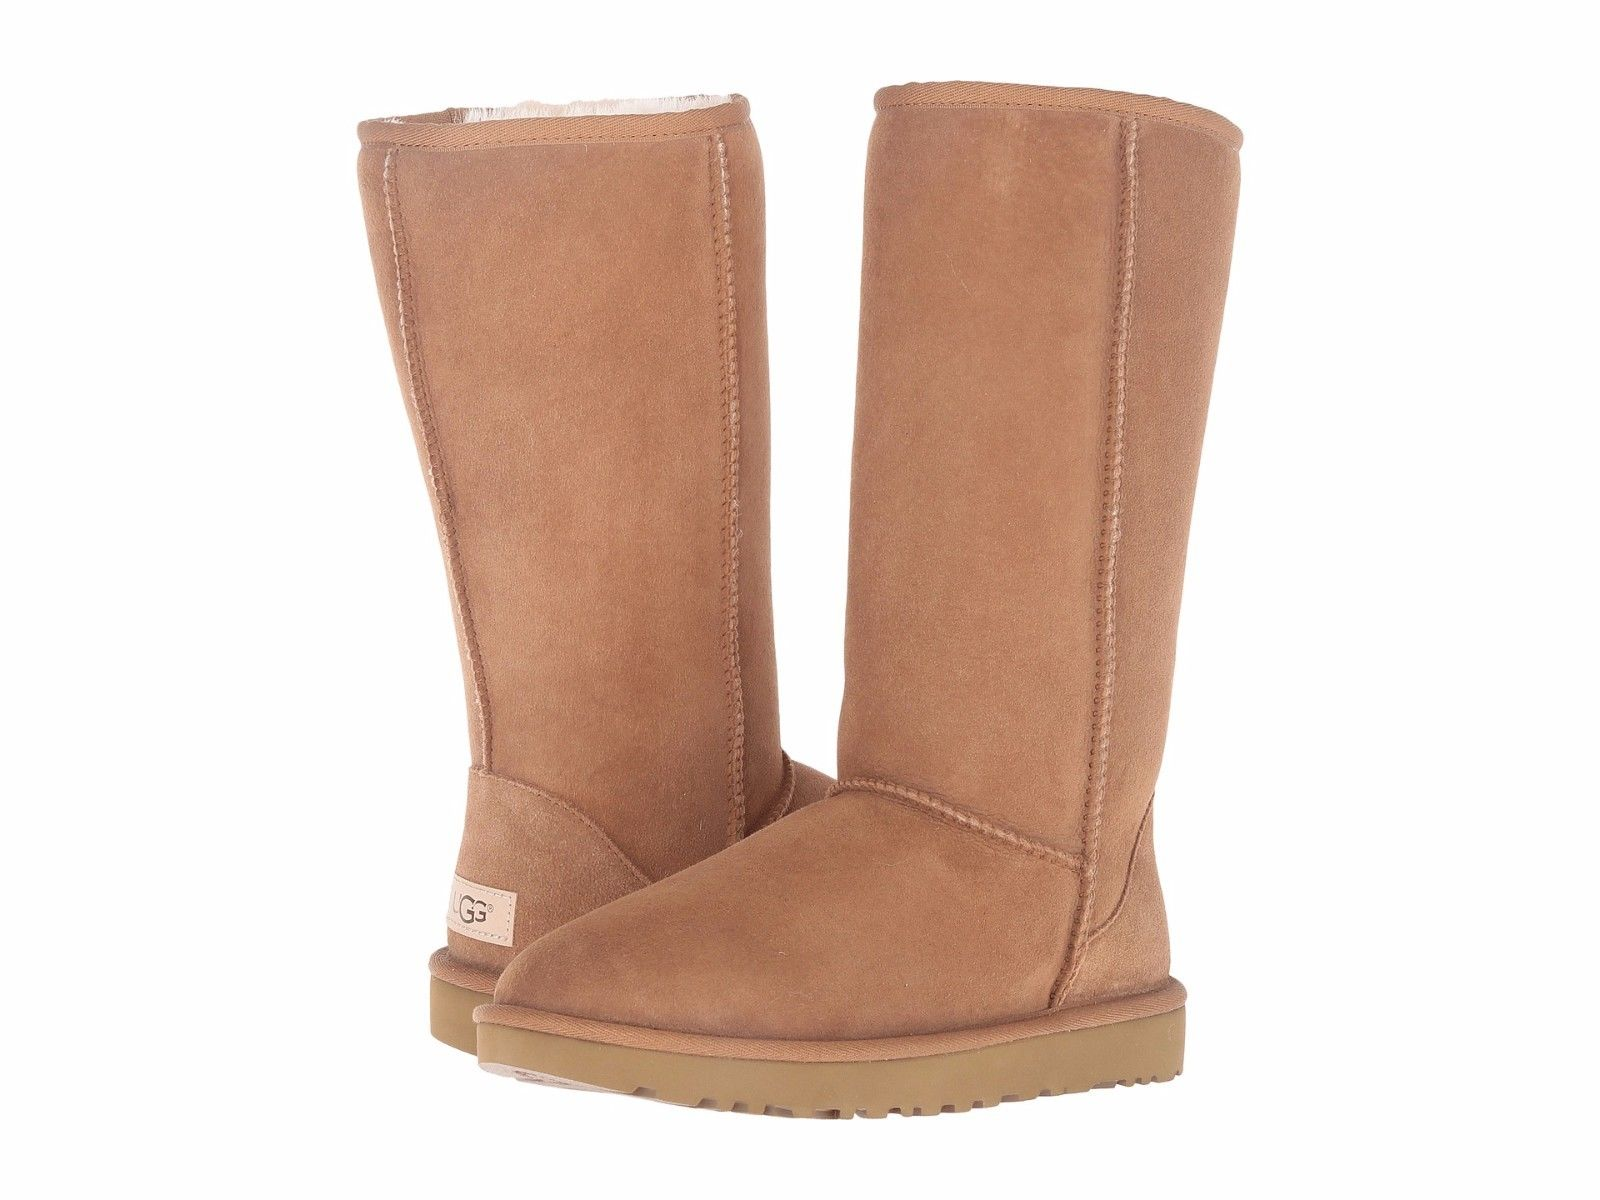 Winter Boots. ugg australia nyc store hours